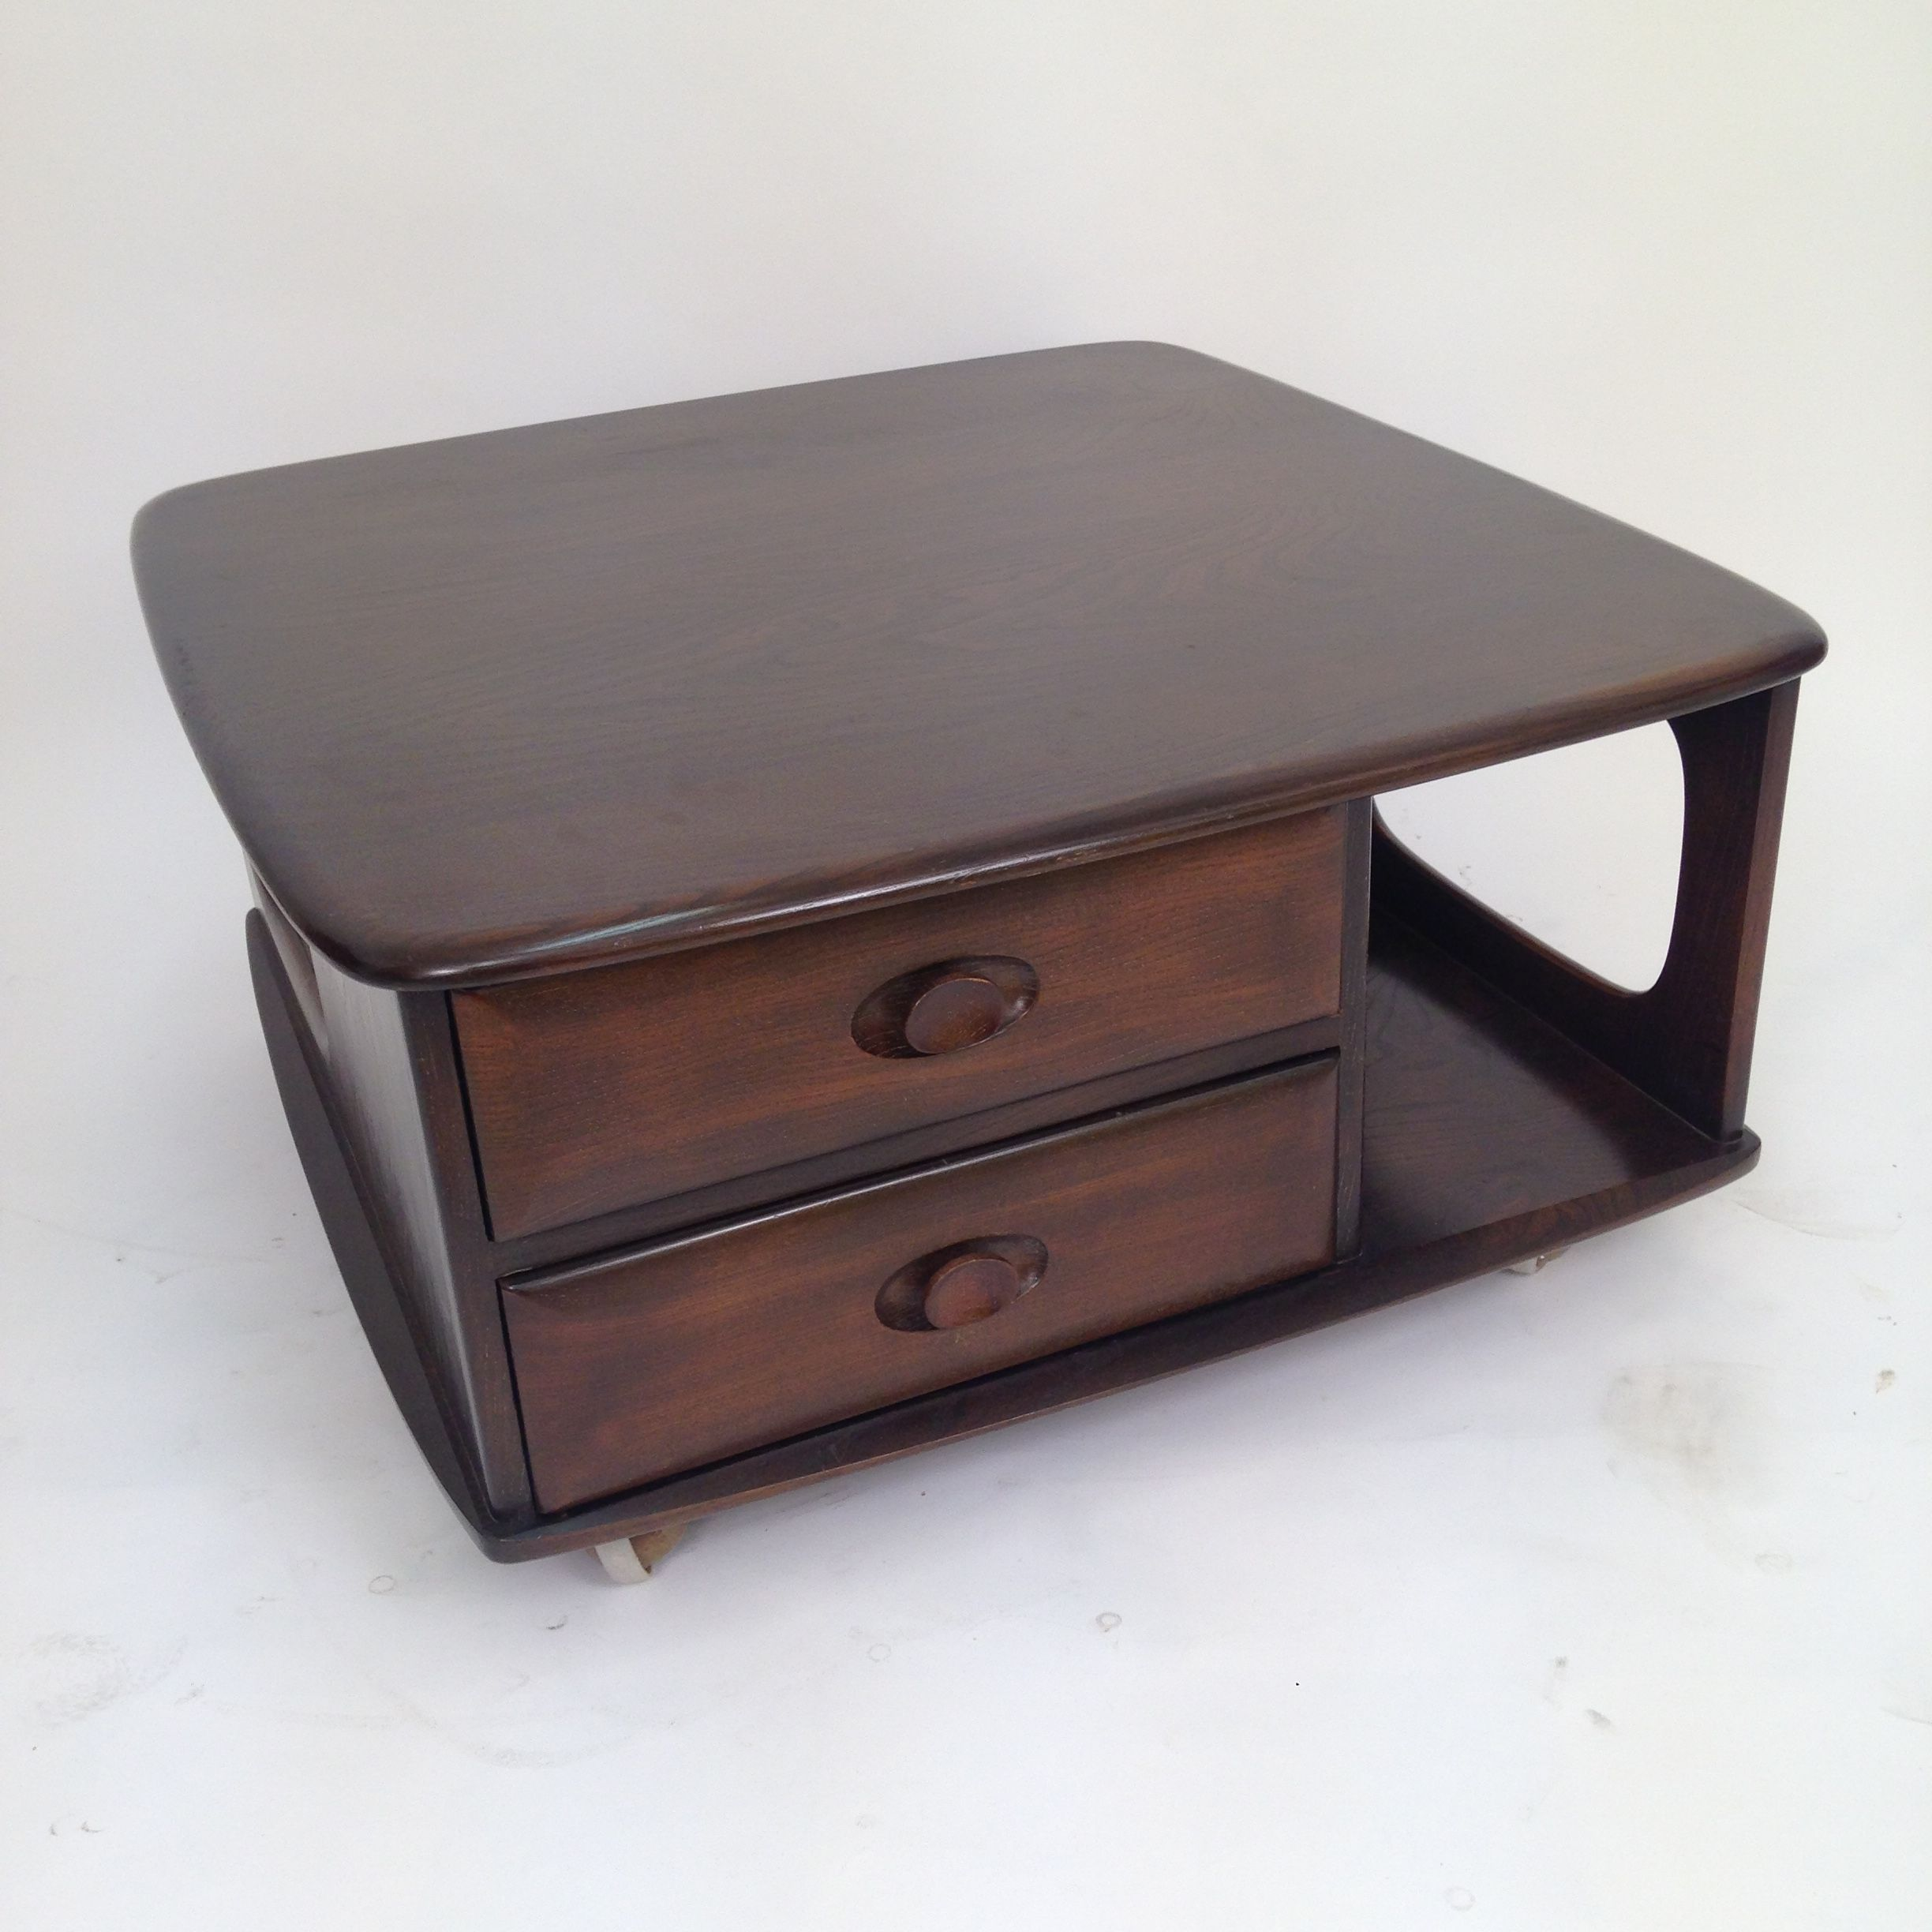 Ercol Pandora Coffee Table 1960 s in fabulous condition for it s